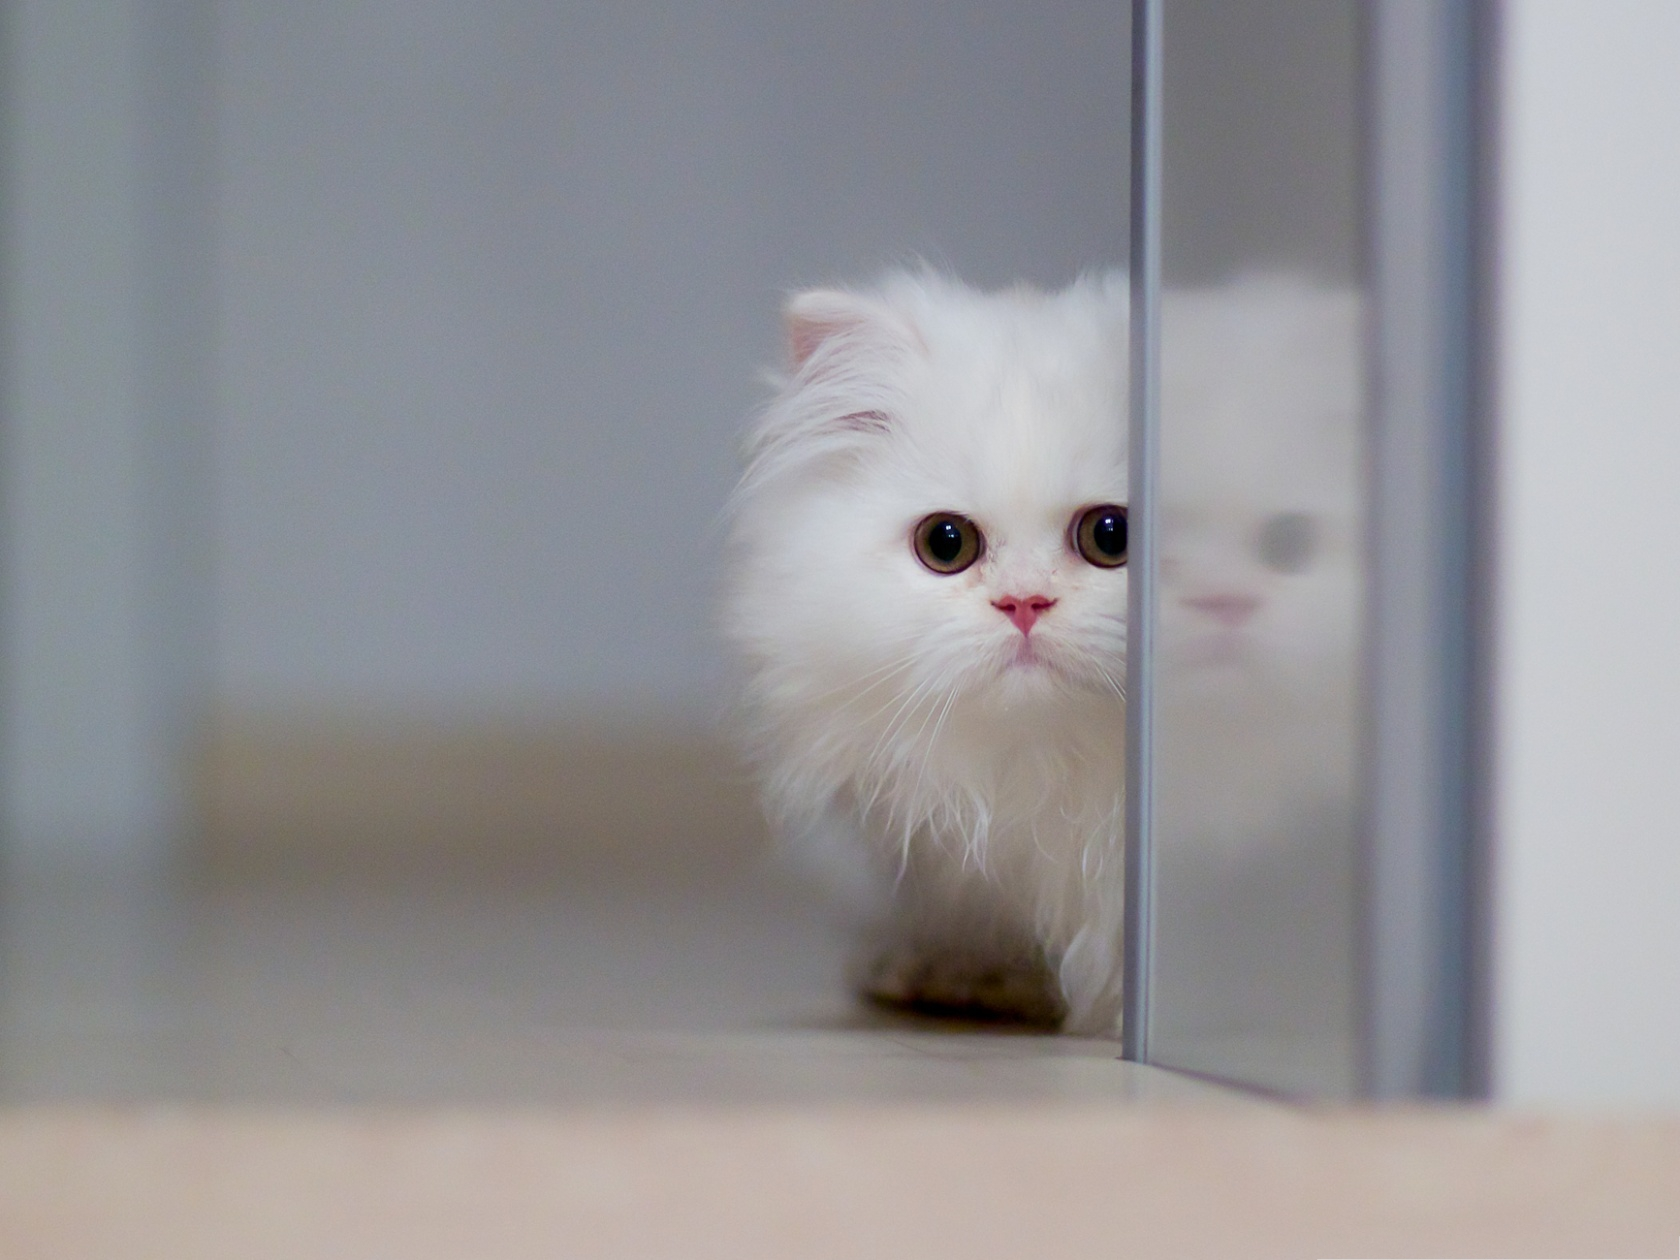 click to free download the wallpaper--Cute Cat Images, White and Cute Kitten, Unwilling to Get Out 1600X1200 free wallpaper download